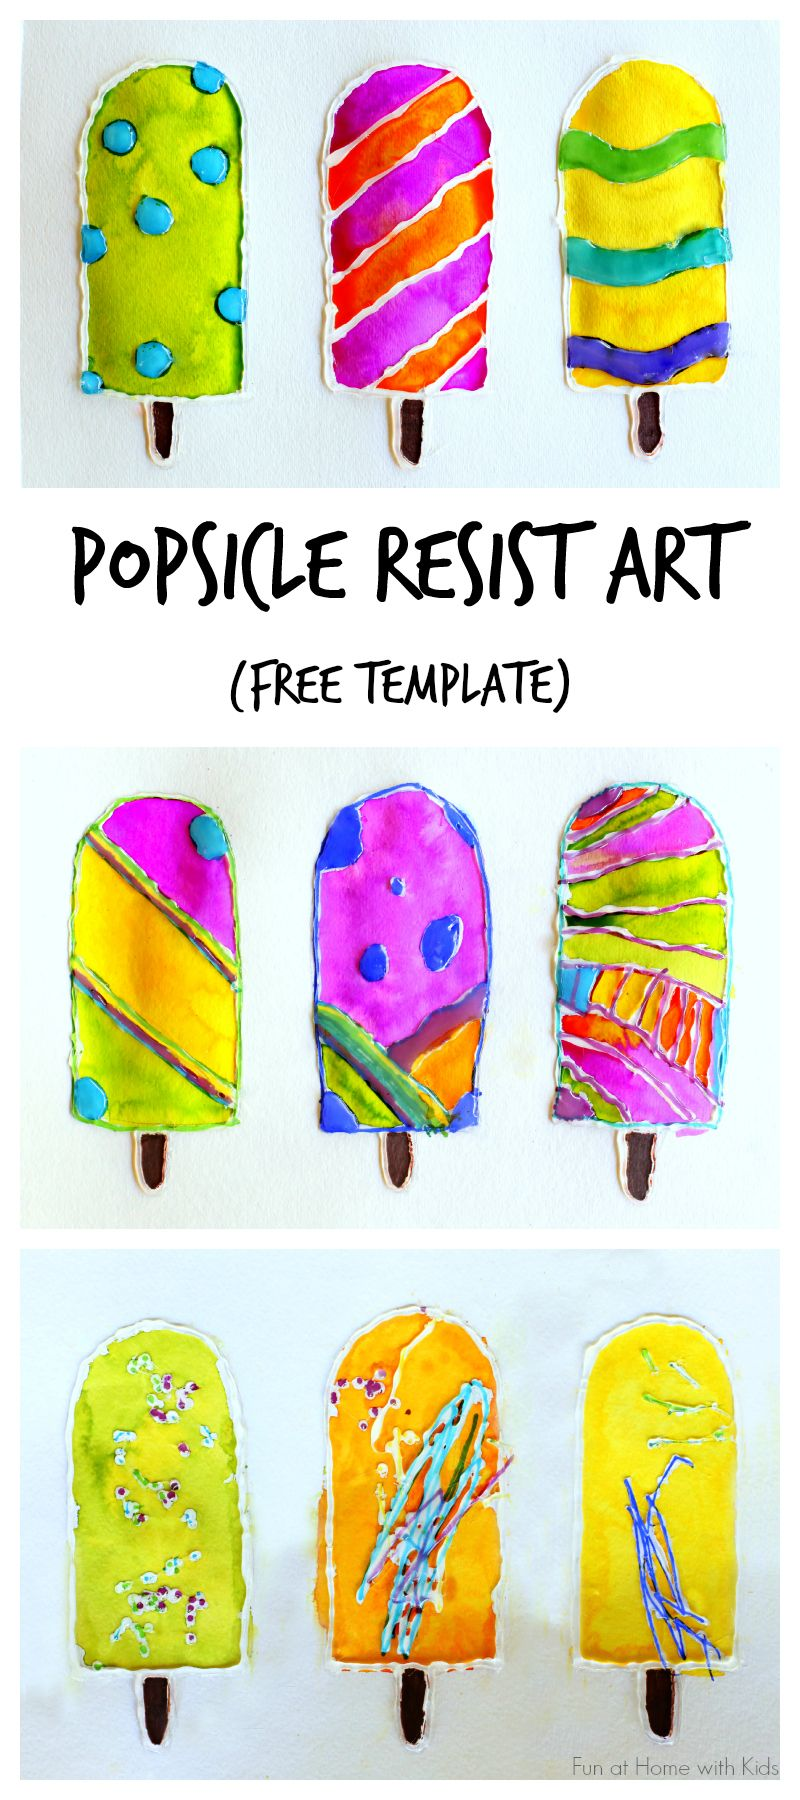 Popsicle resist art with free popsicle template for Popsicle crafts for kids